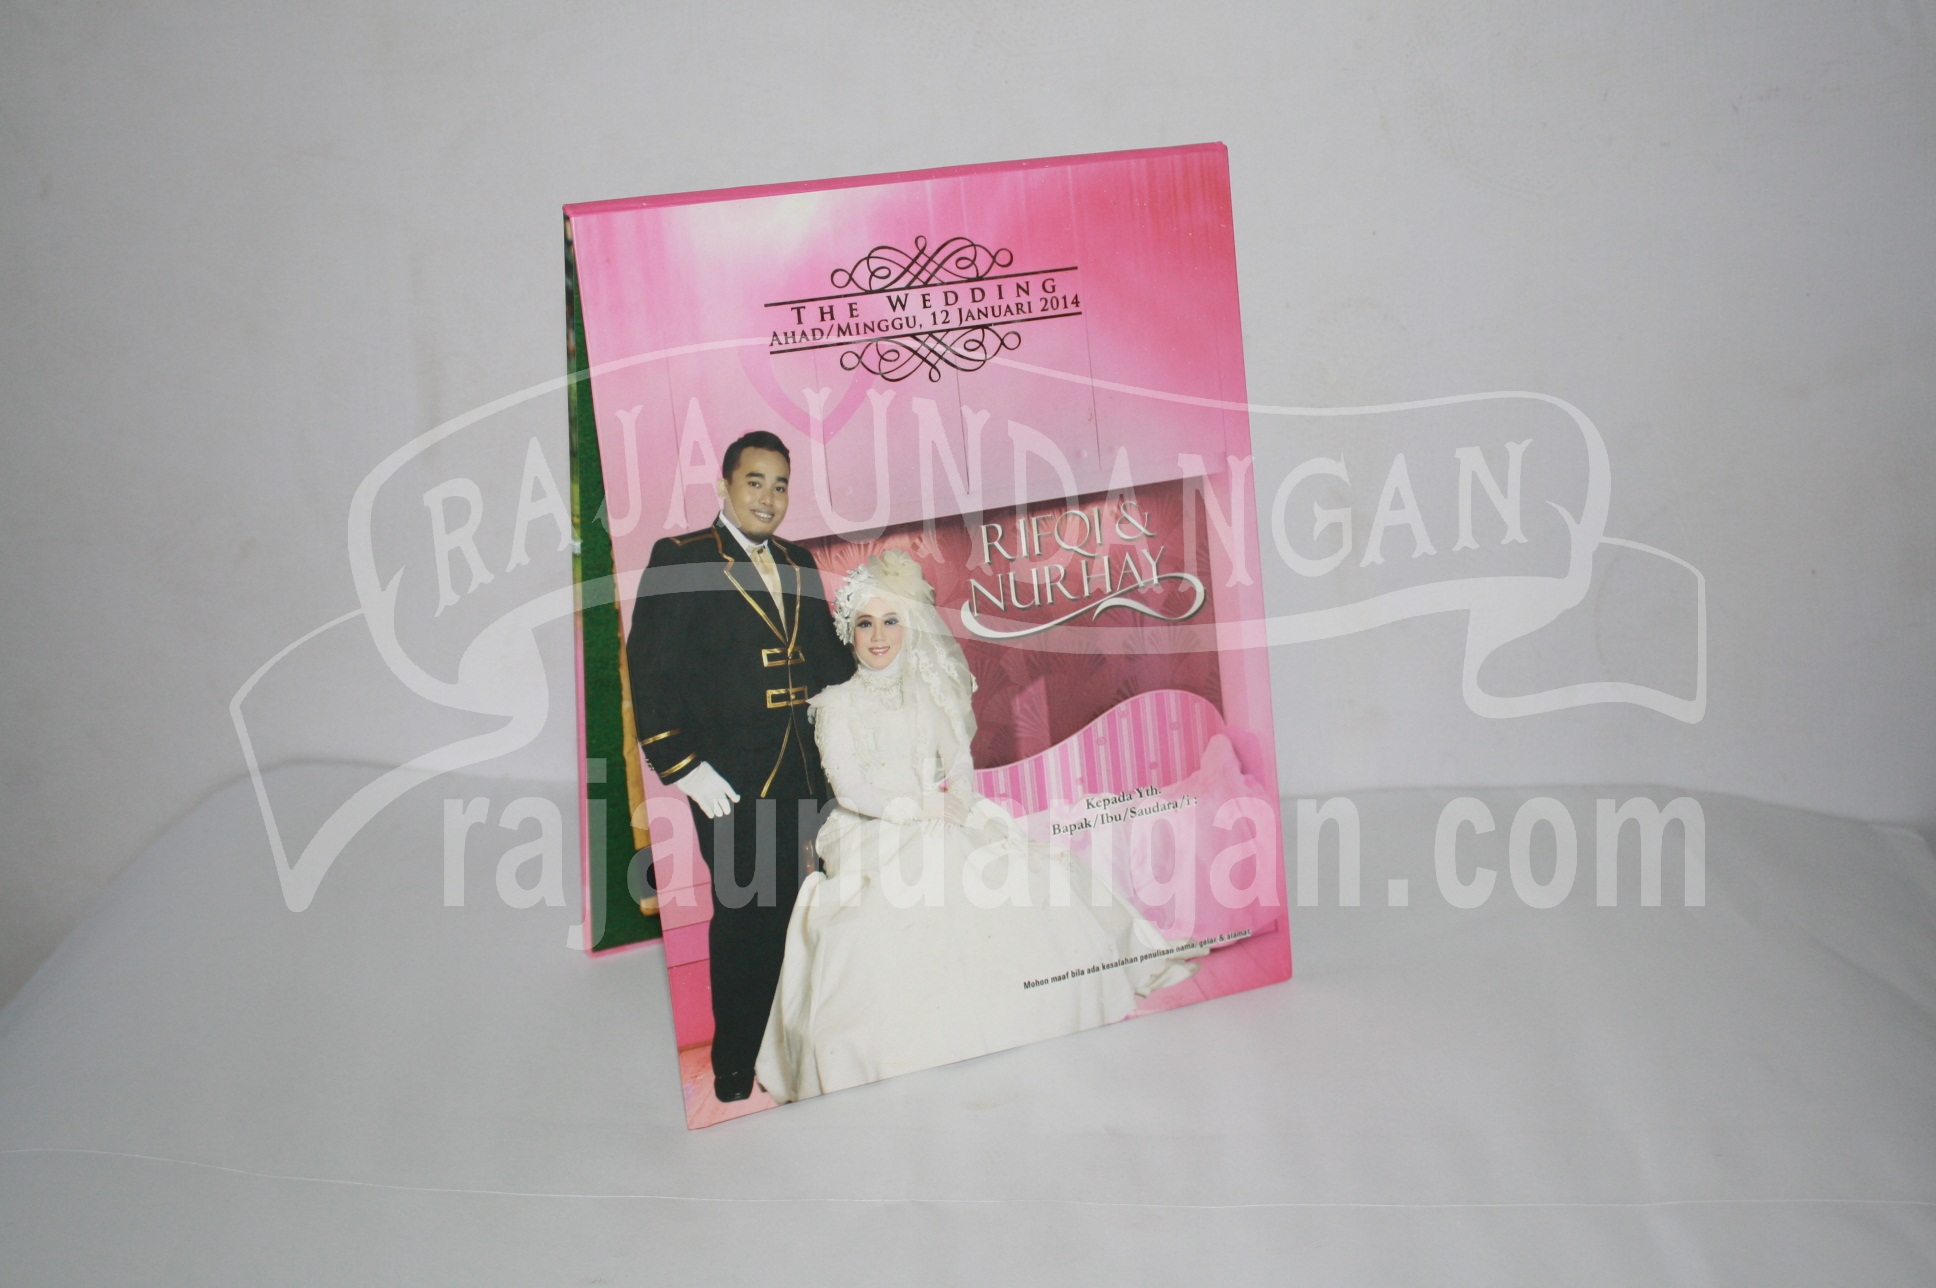 Undangan Pernikahan Hardcover Pop Up Rifqi dan Nurhay EDC 40 - Percetakan Wedding Invitations Unik dan Eksklusif di Tandes